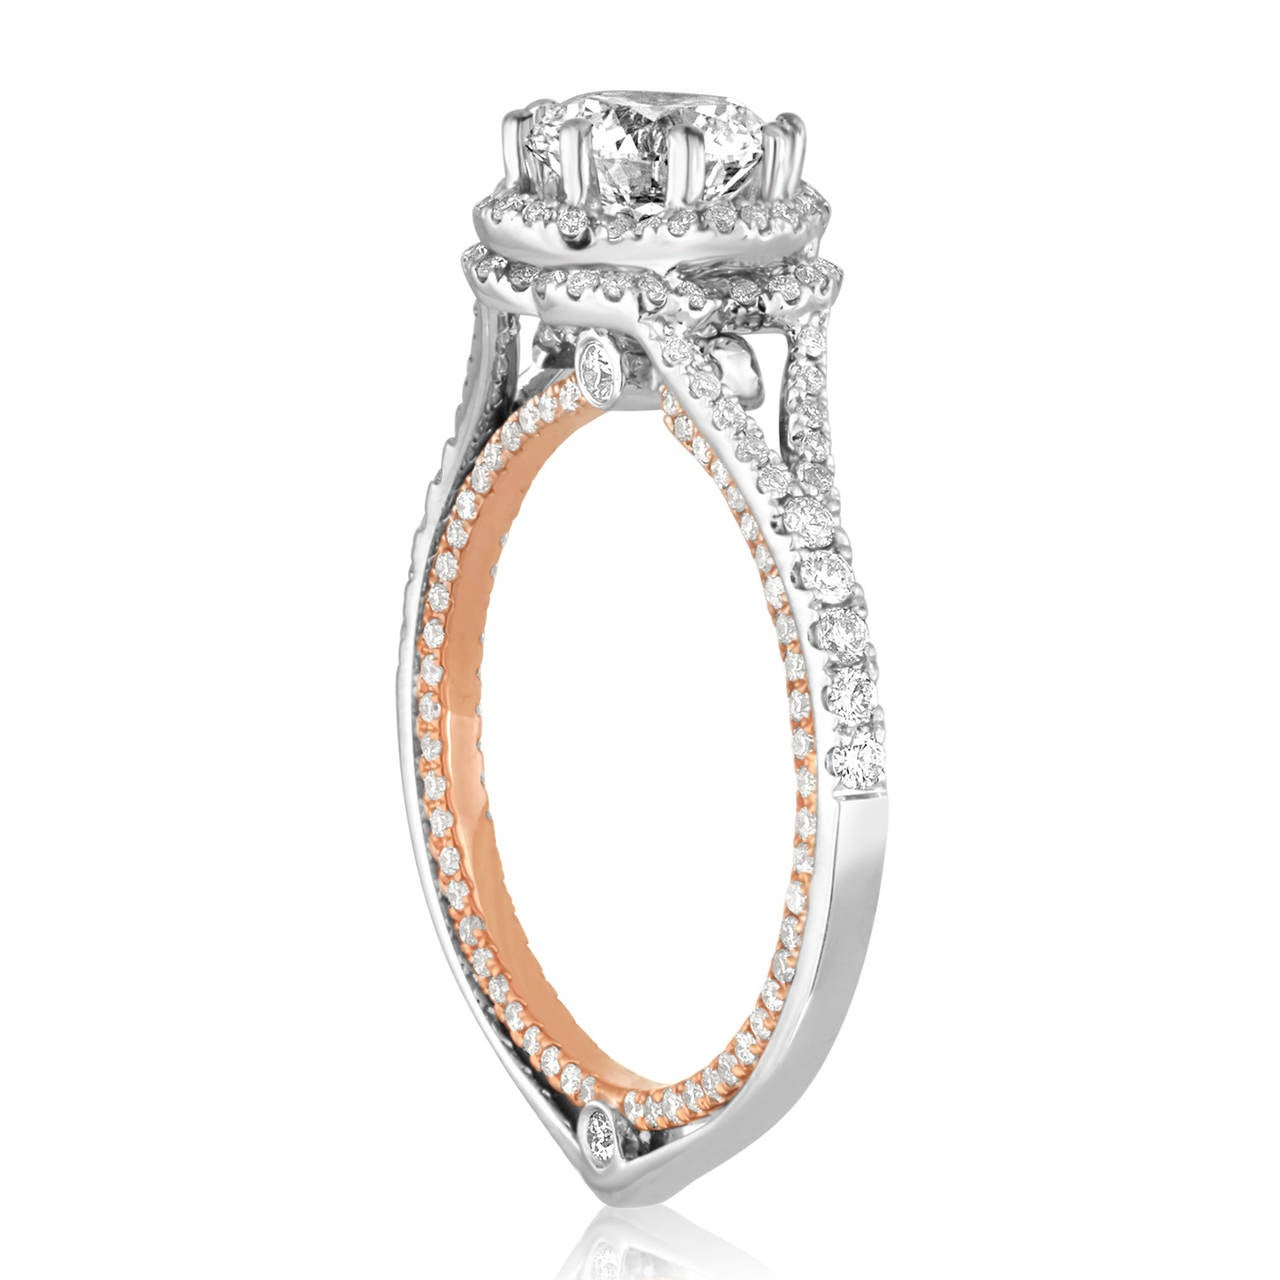 Contemporary GIA Certified 1.08 Carat F VVS1 Diamond Two-Tone Gold Engagement Ring For Sale